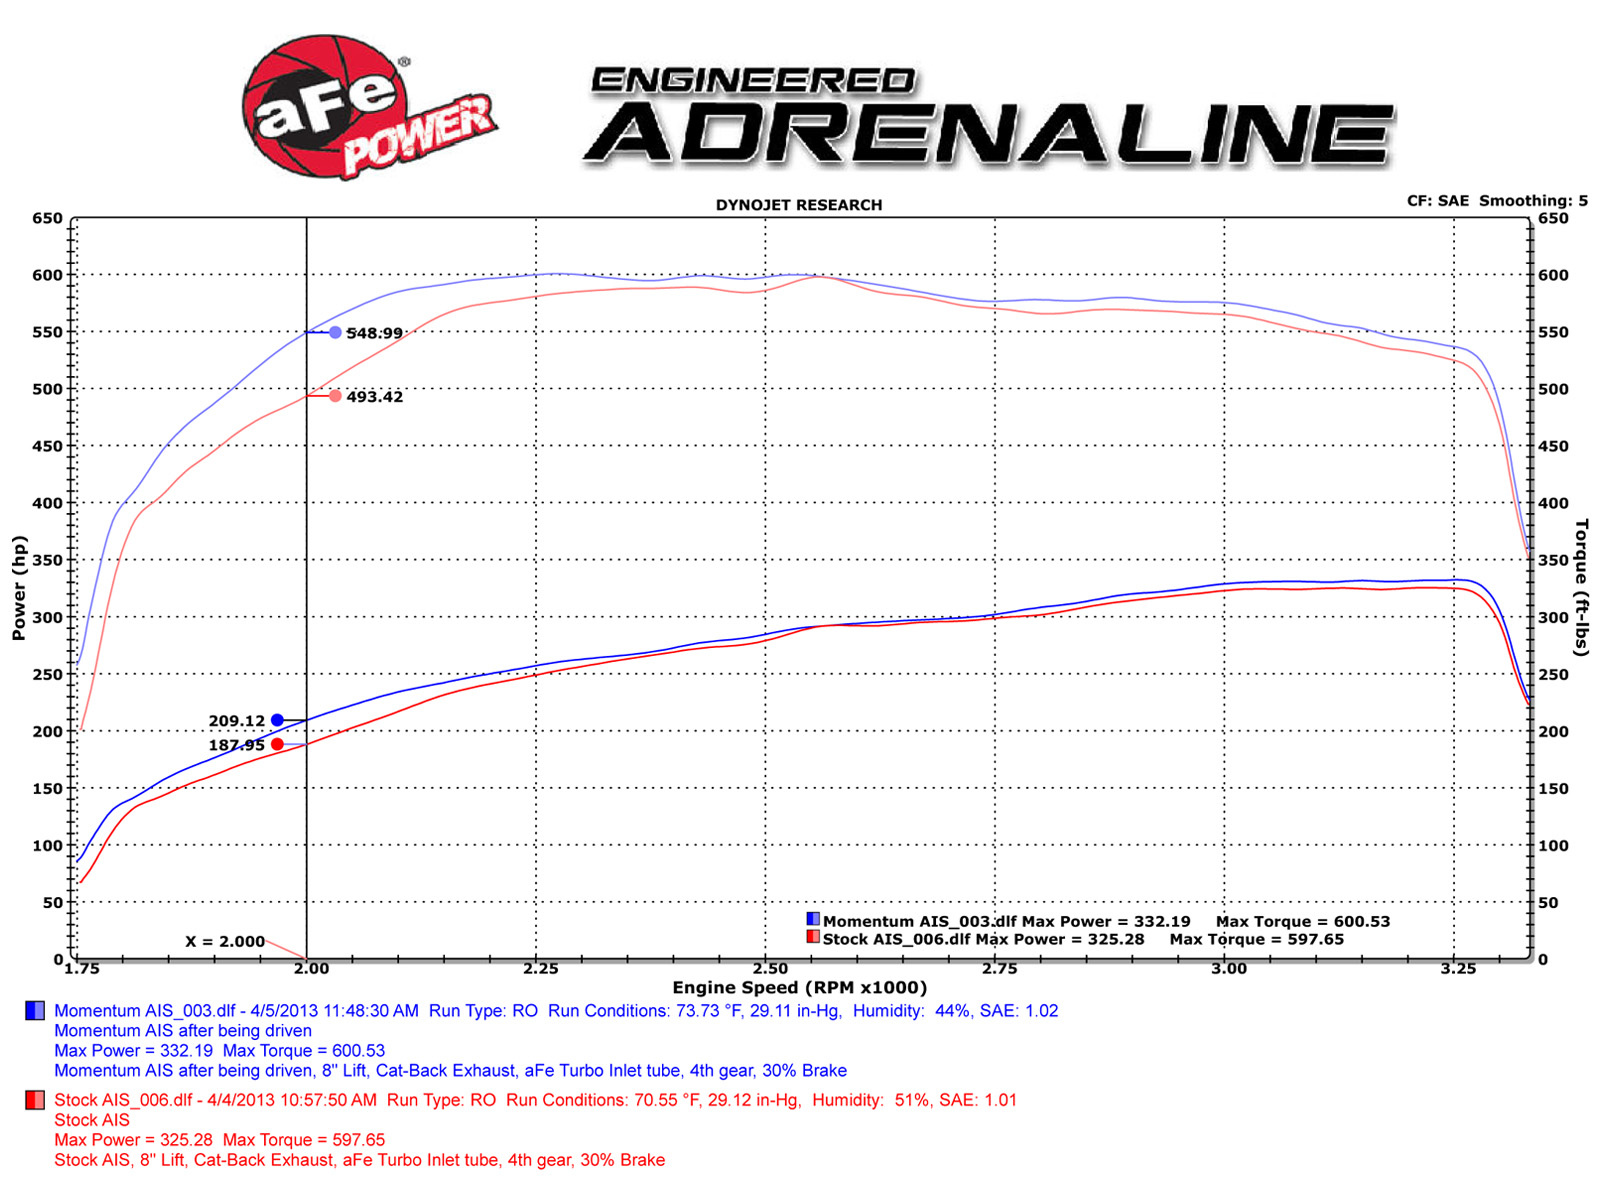 Duramax LBZ Intake Power Gains